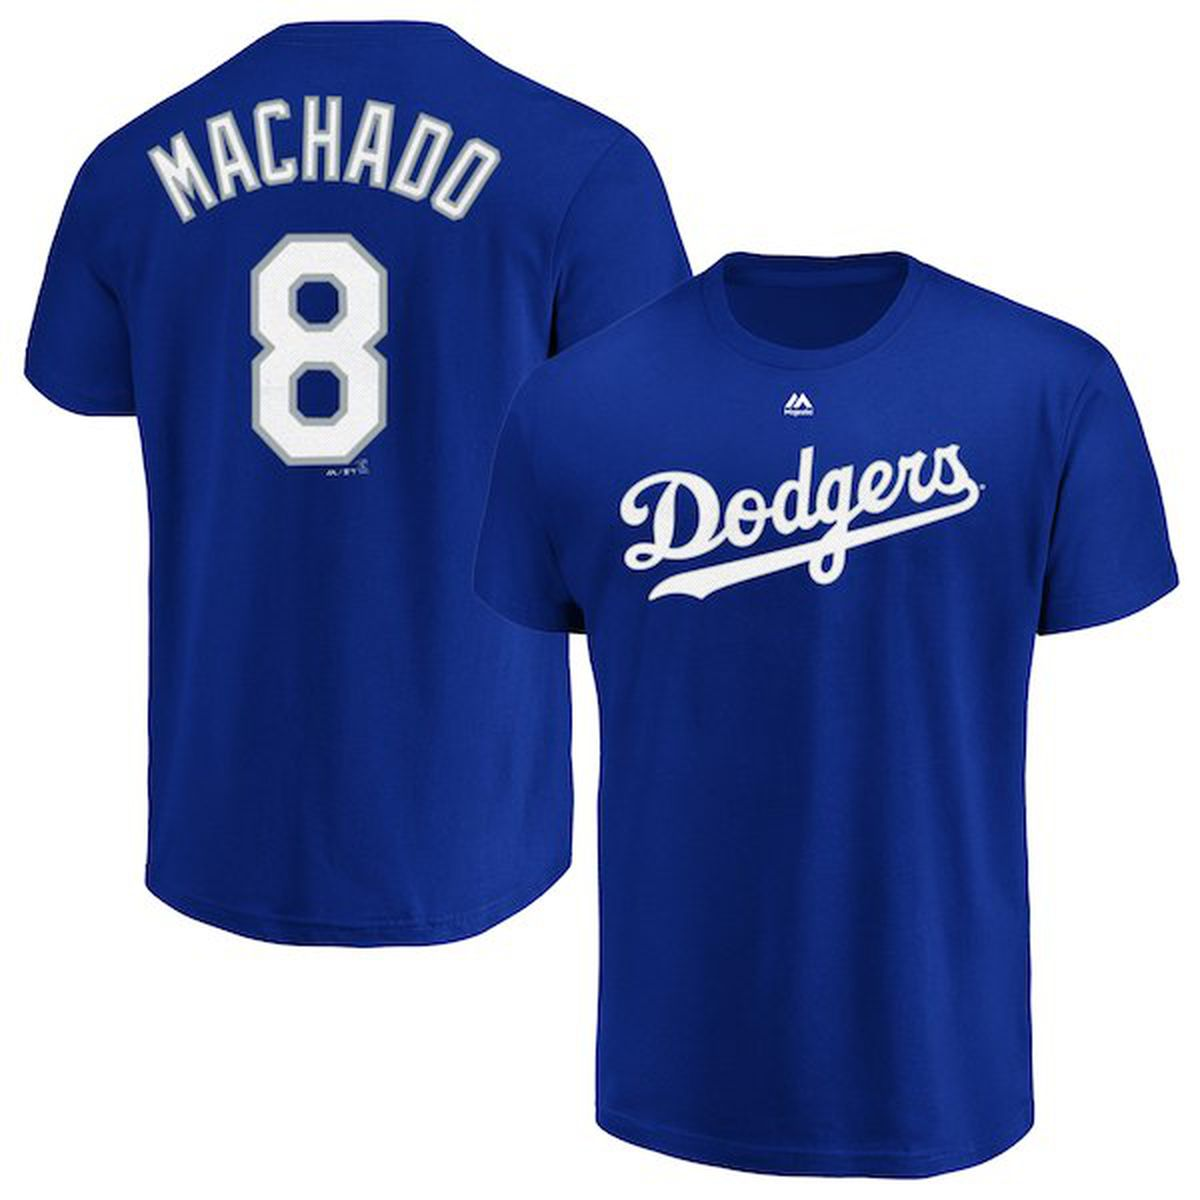 The first Manny Machado Dodgers apparel, including jerseys ...